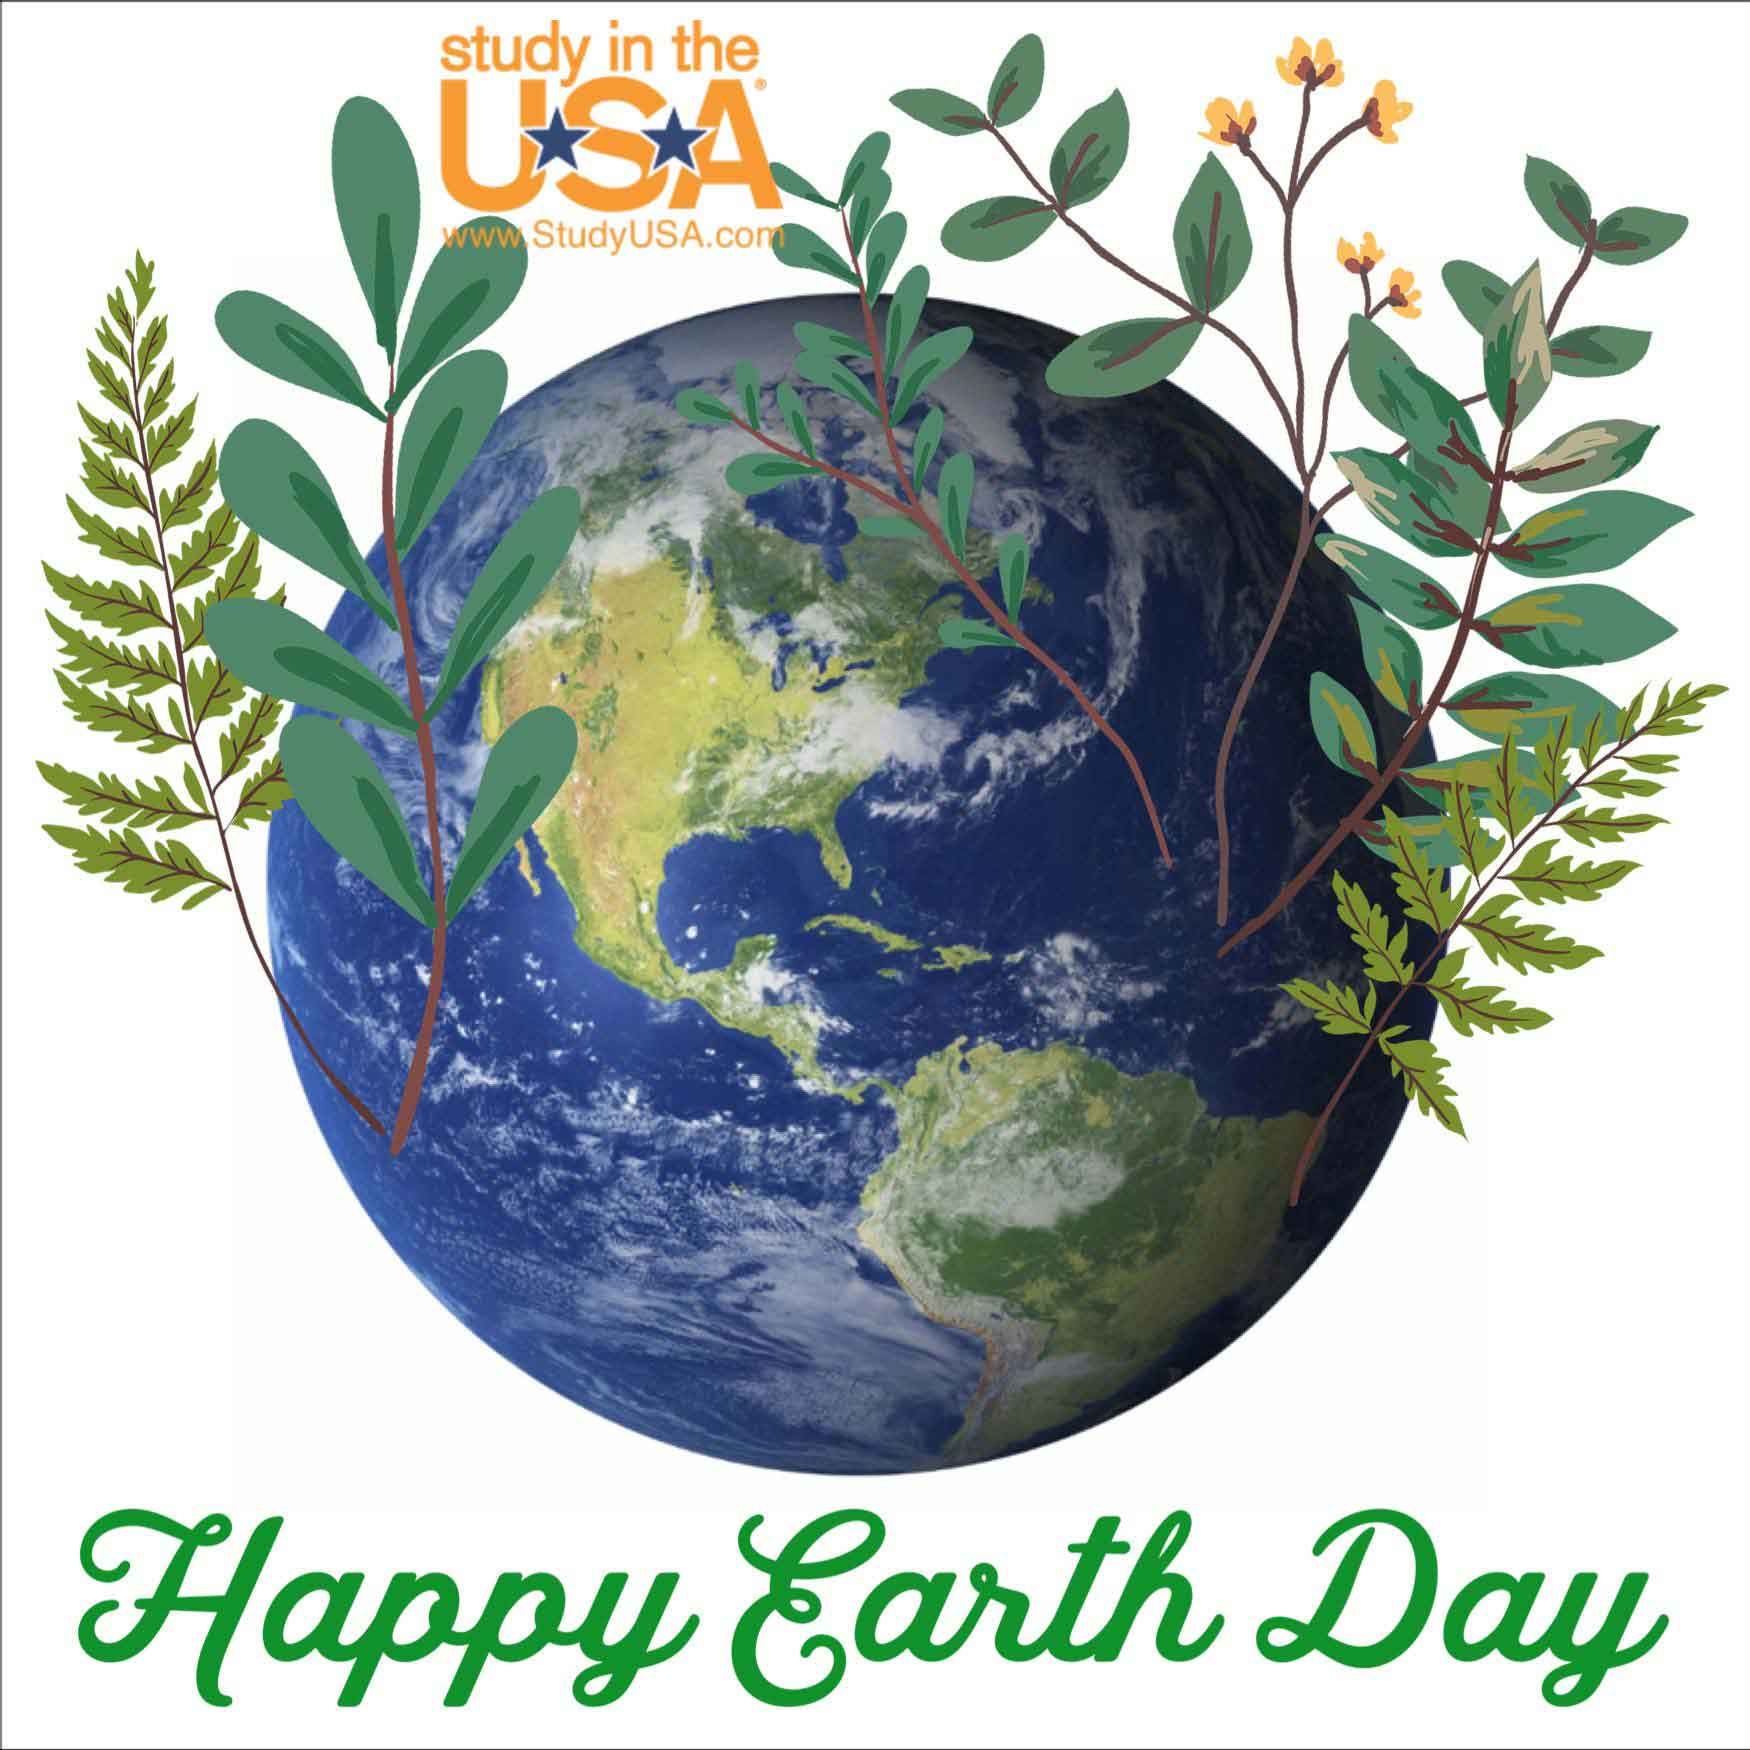 Blog post image for Happy Earth Day!